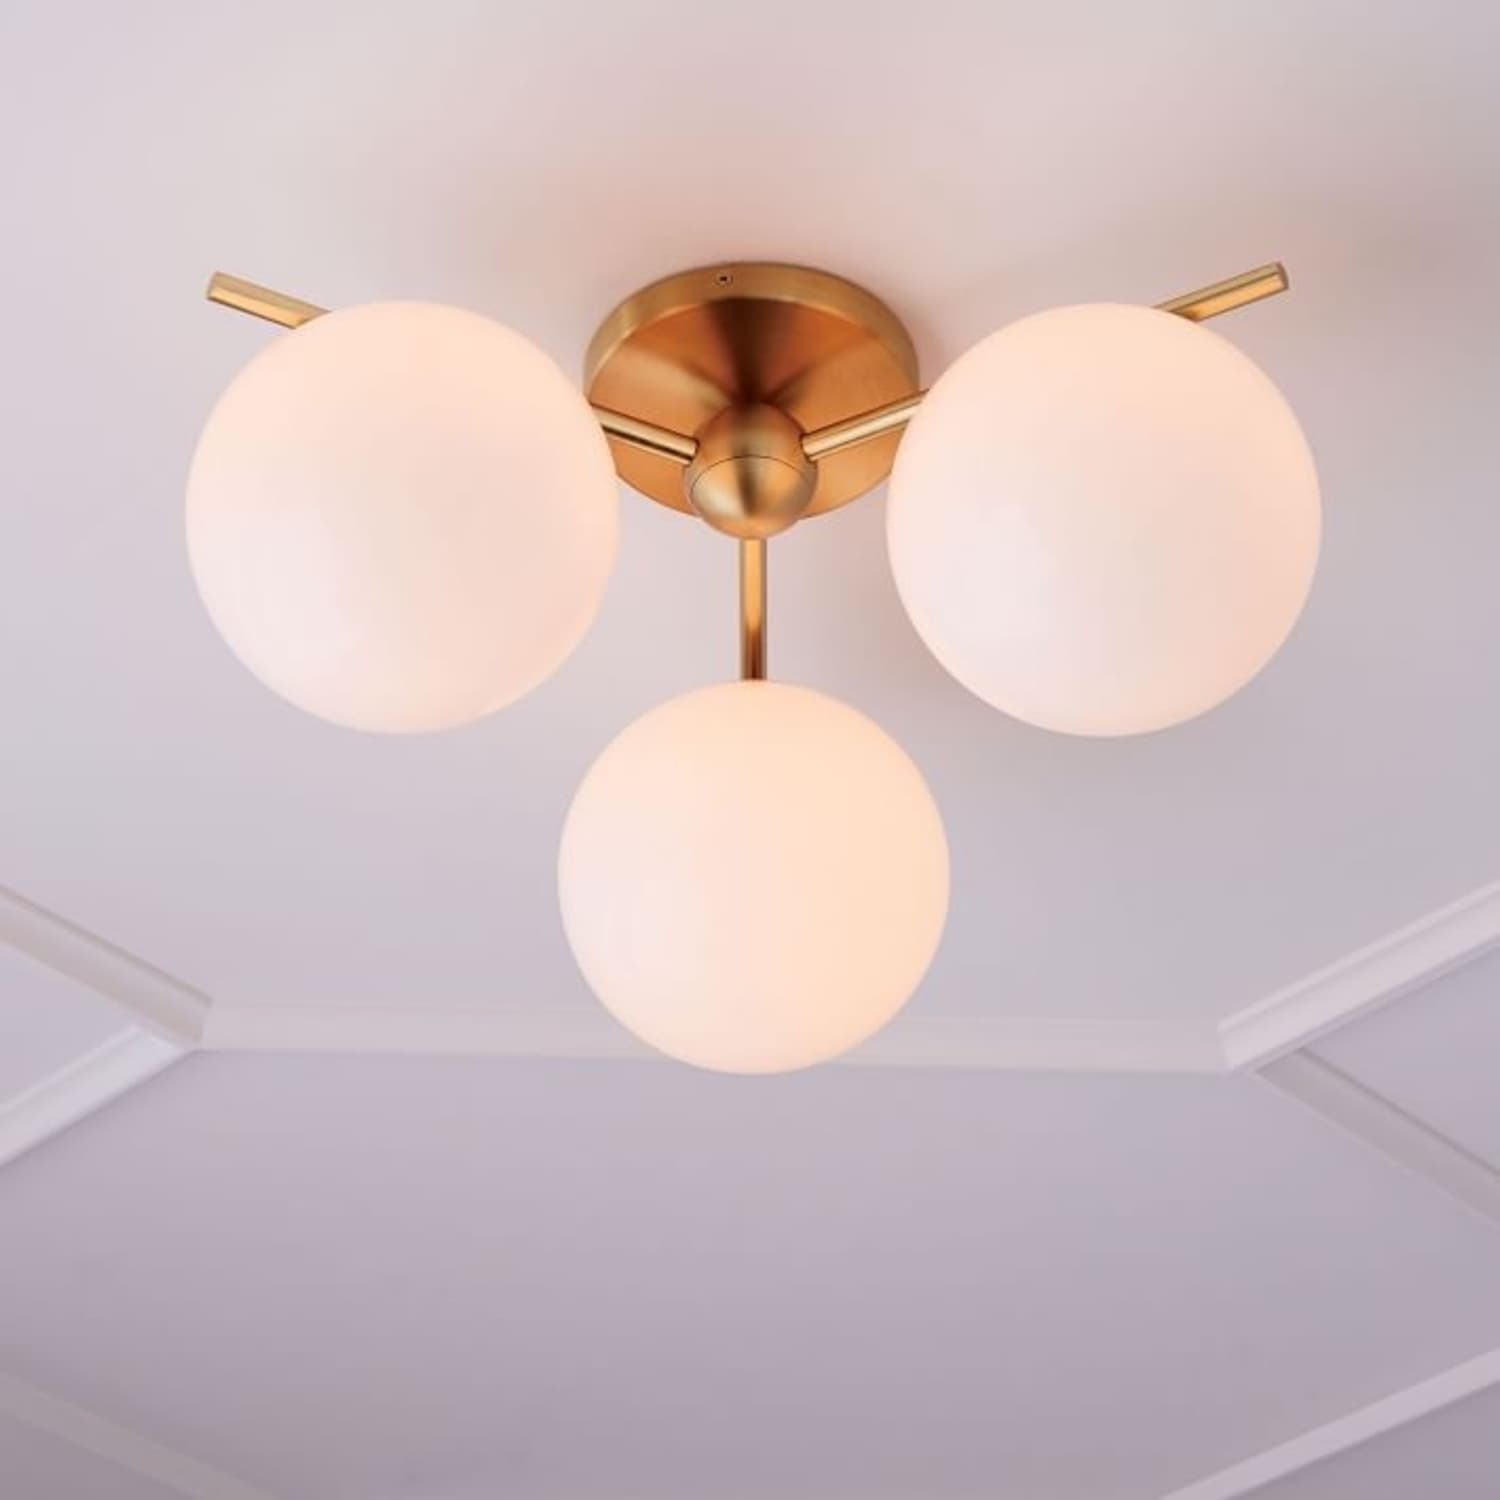 Best Modern Flush-Mount Ceiling Light Fixtures  Apartment Therapy